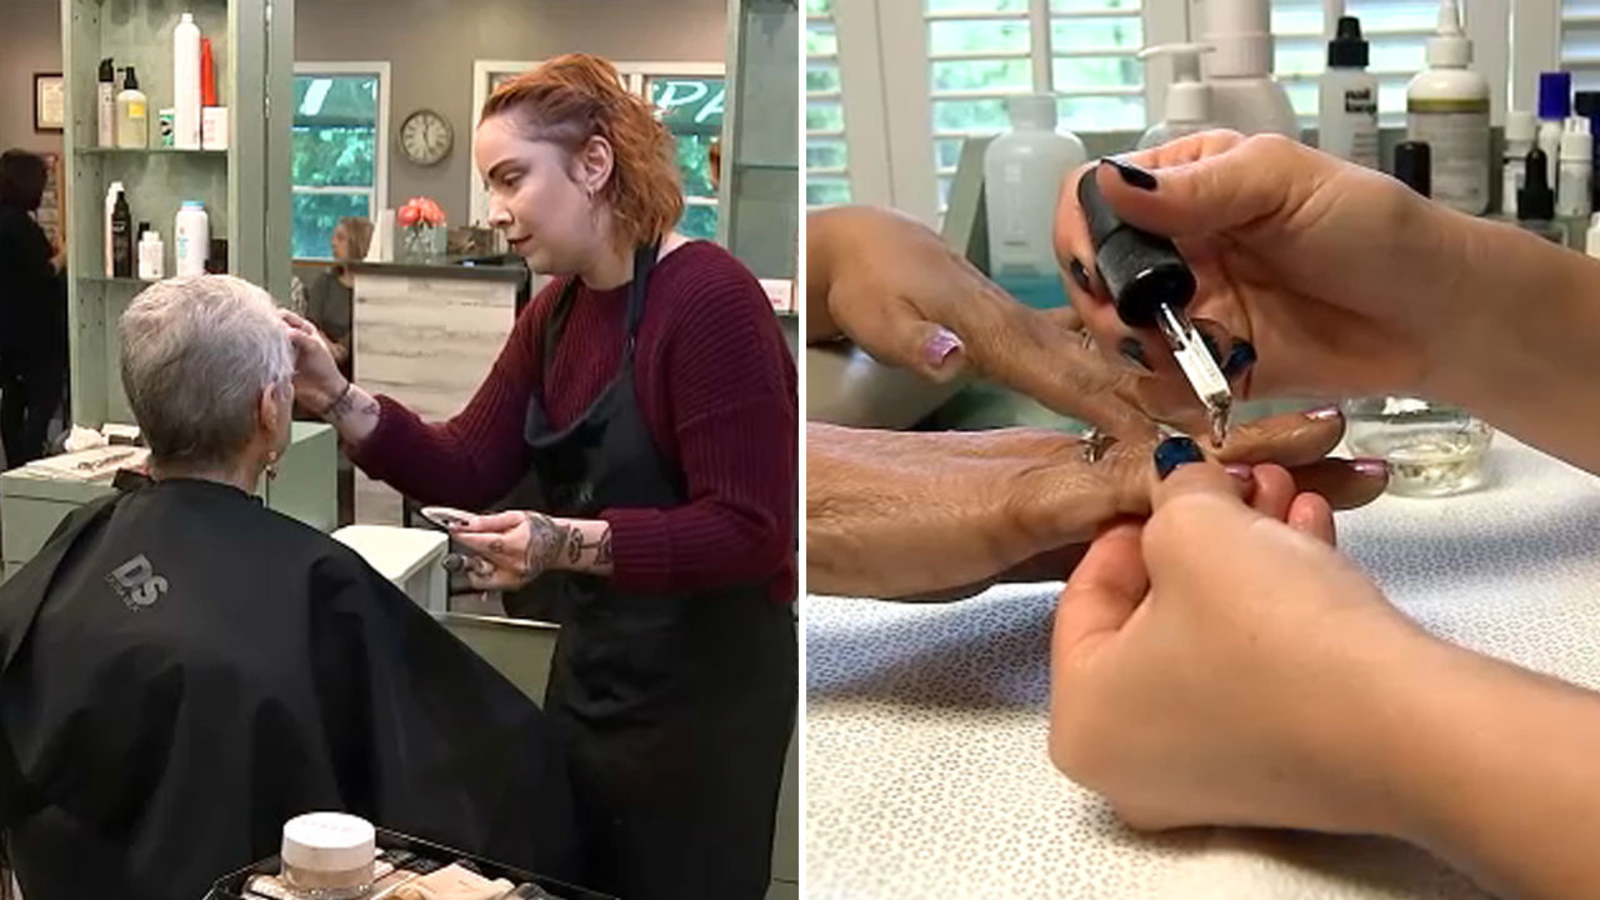 Salon in New Jersey offers complimentary services to cancer survivors